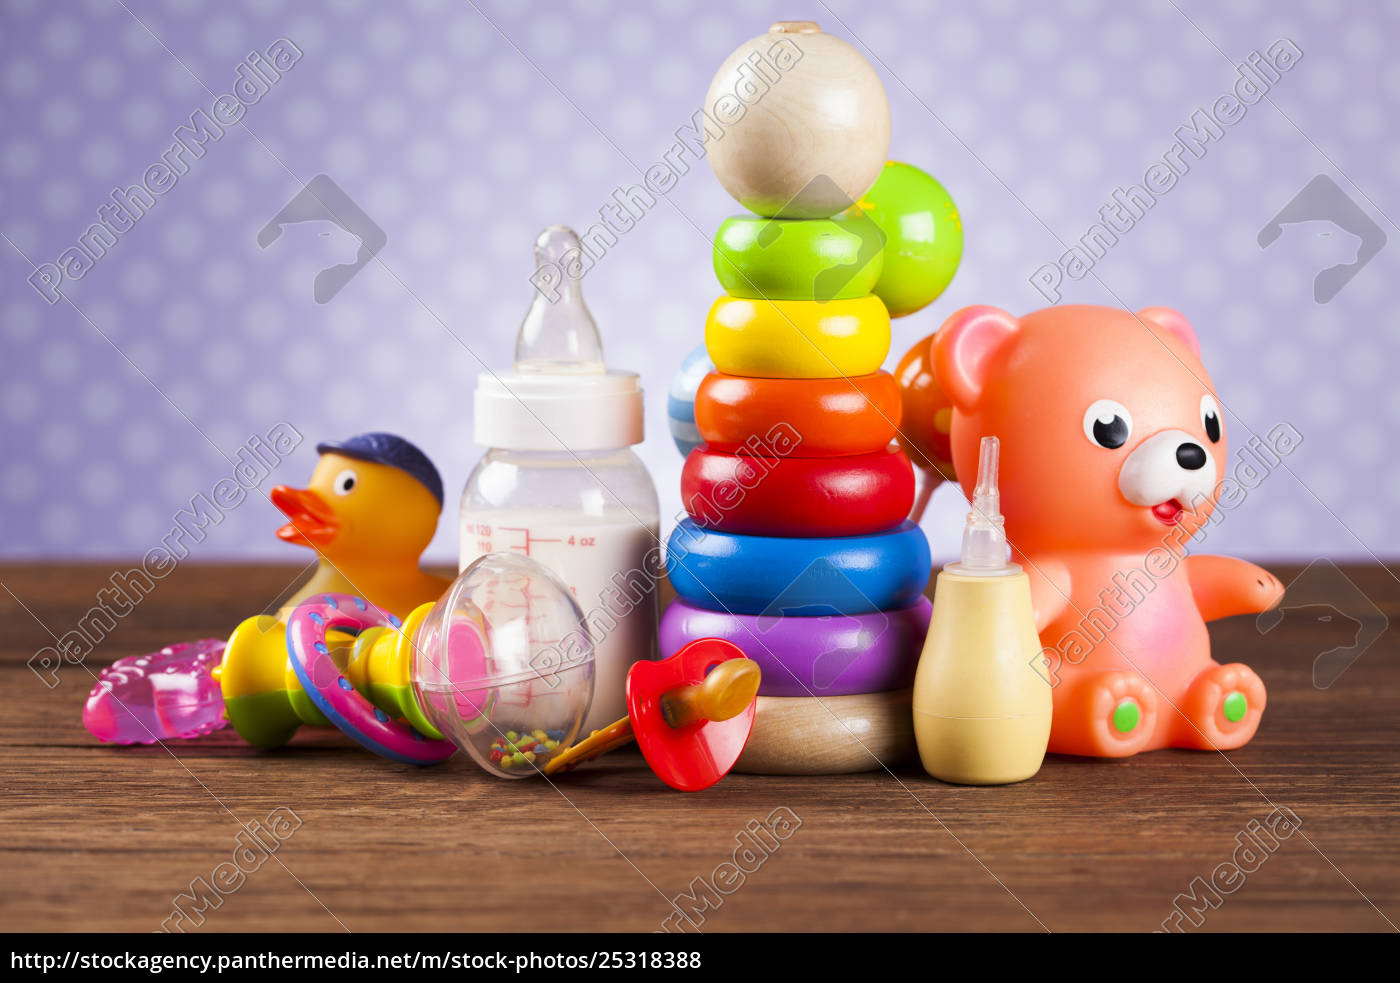 baby, world, toy, collection, on, on - 25318388